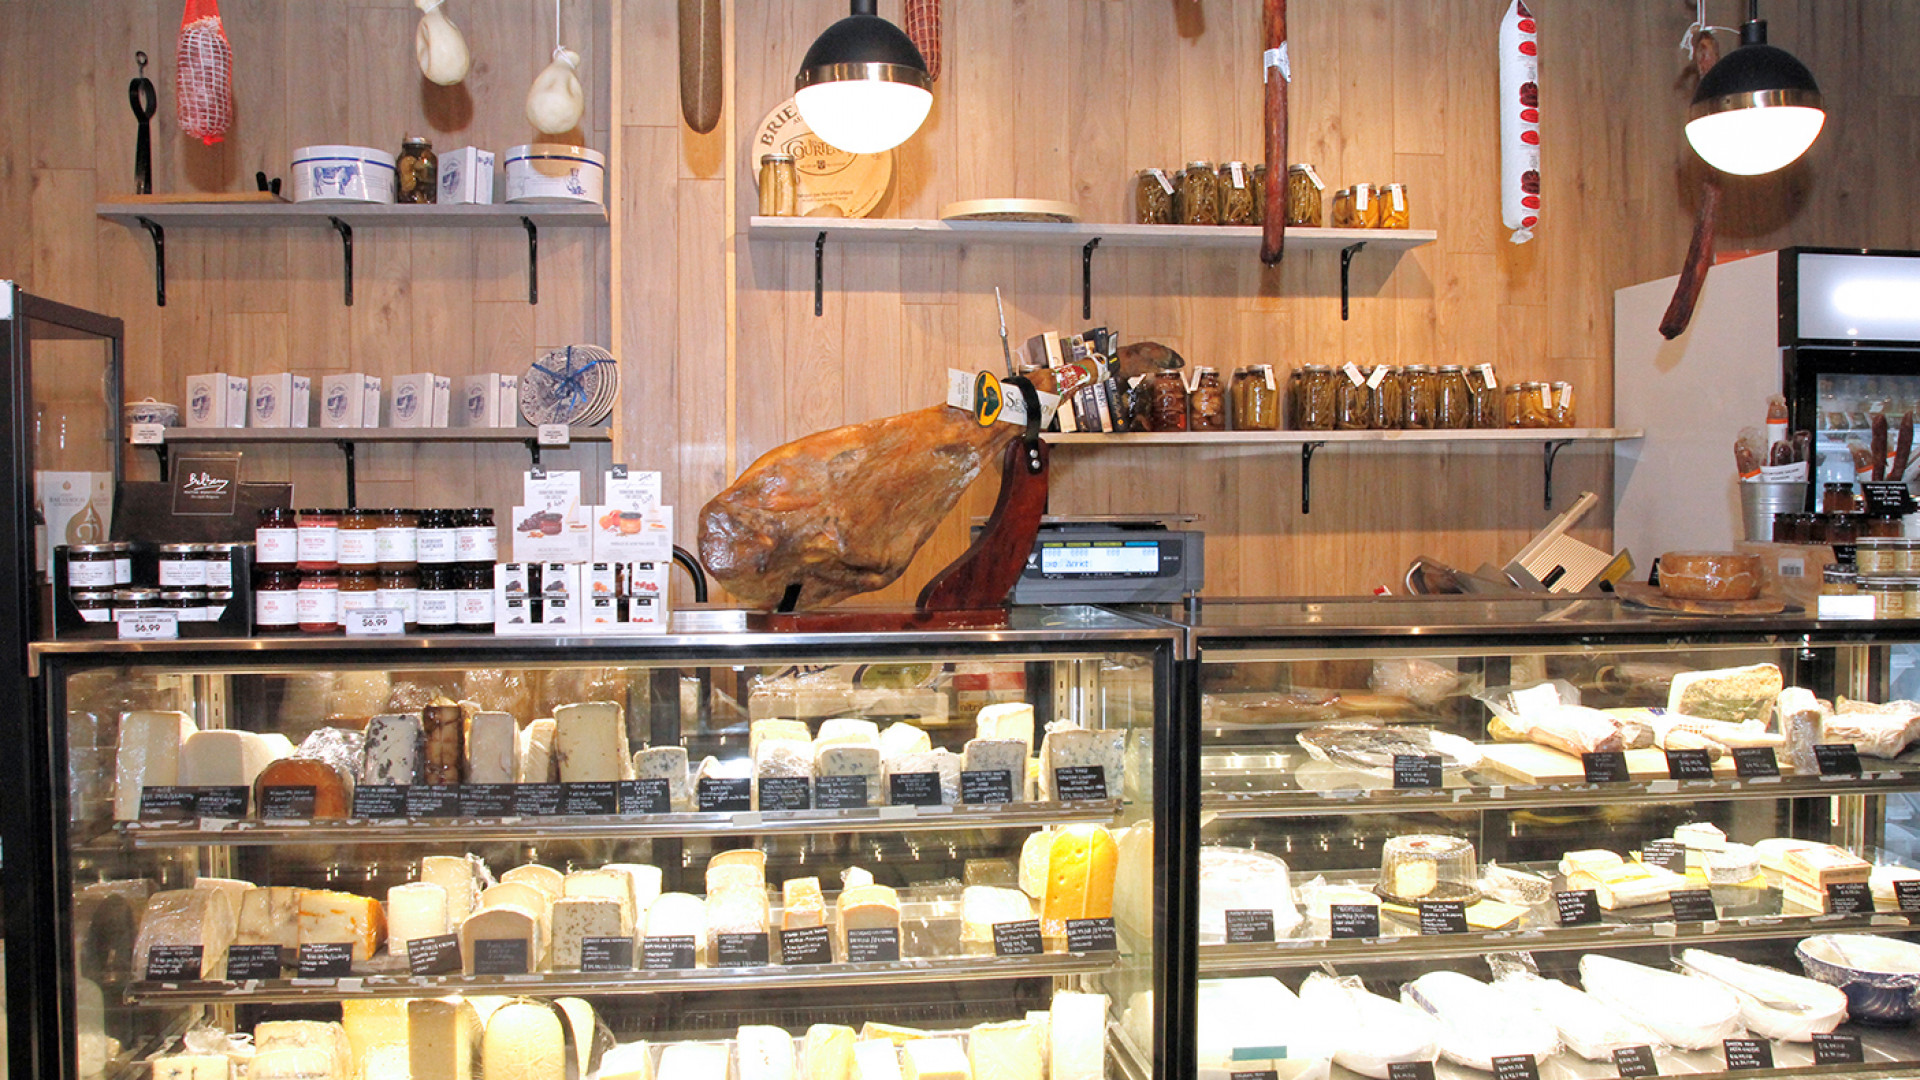 Unboxed Market, Zero waste grocery store and refillery | At the cheese counter, fill up your own container from home